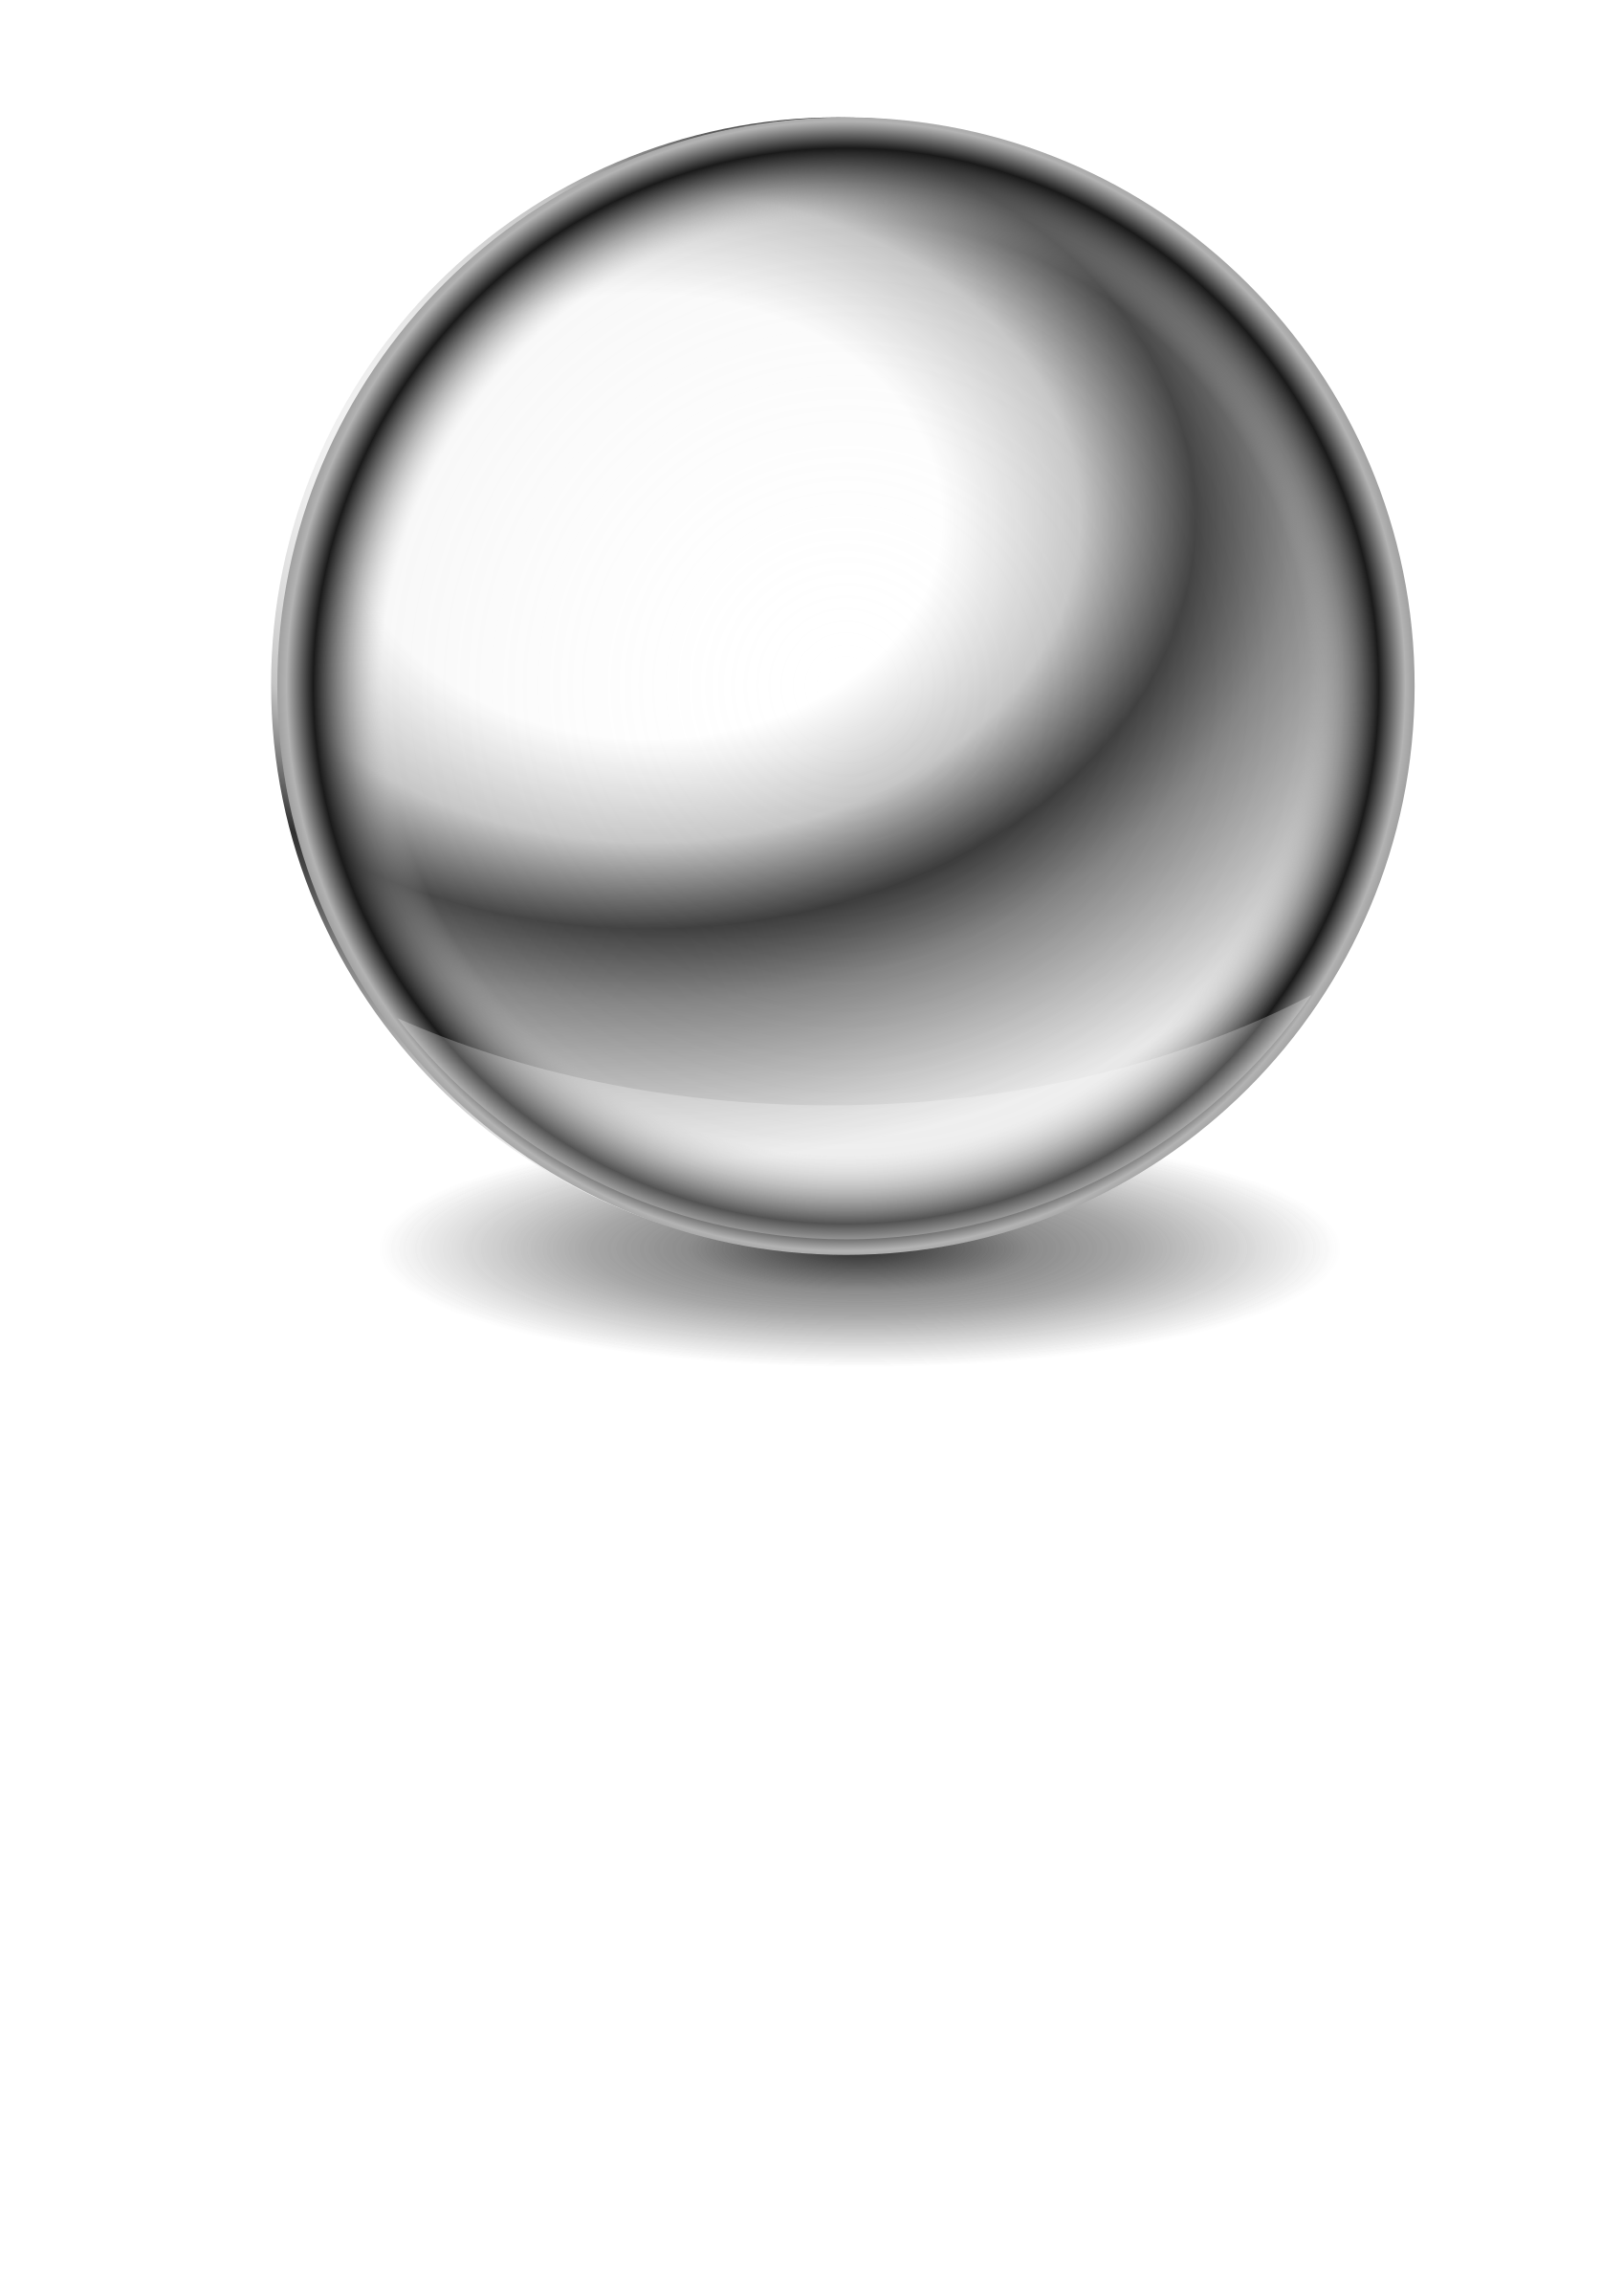 Steel ball png. Icons free and downloads